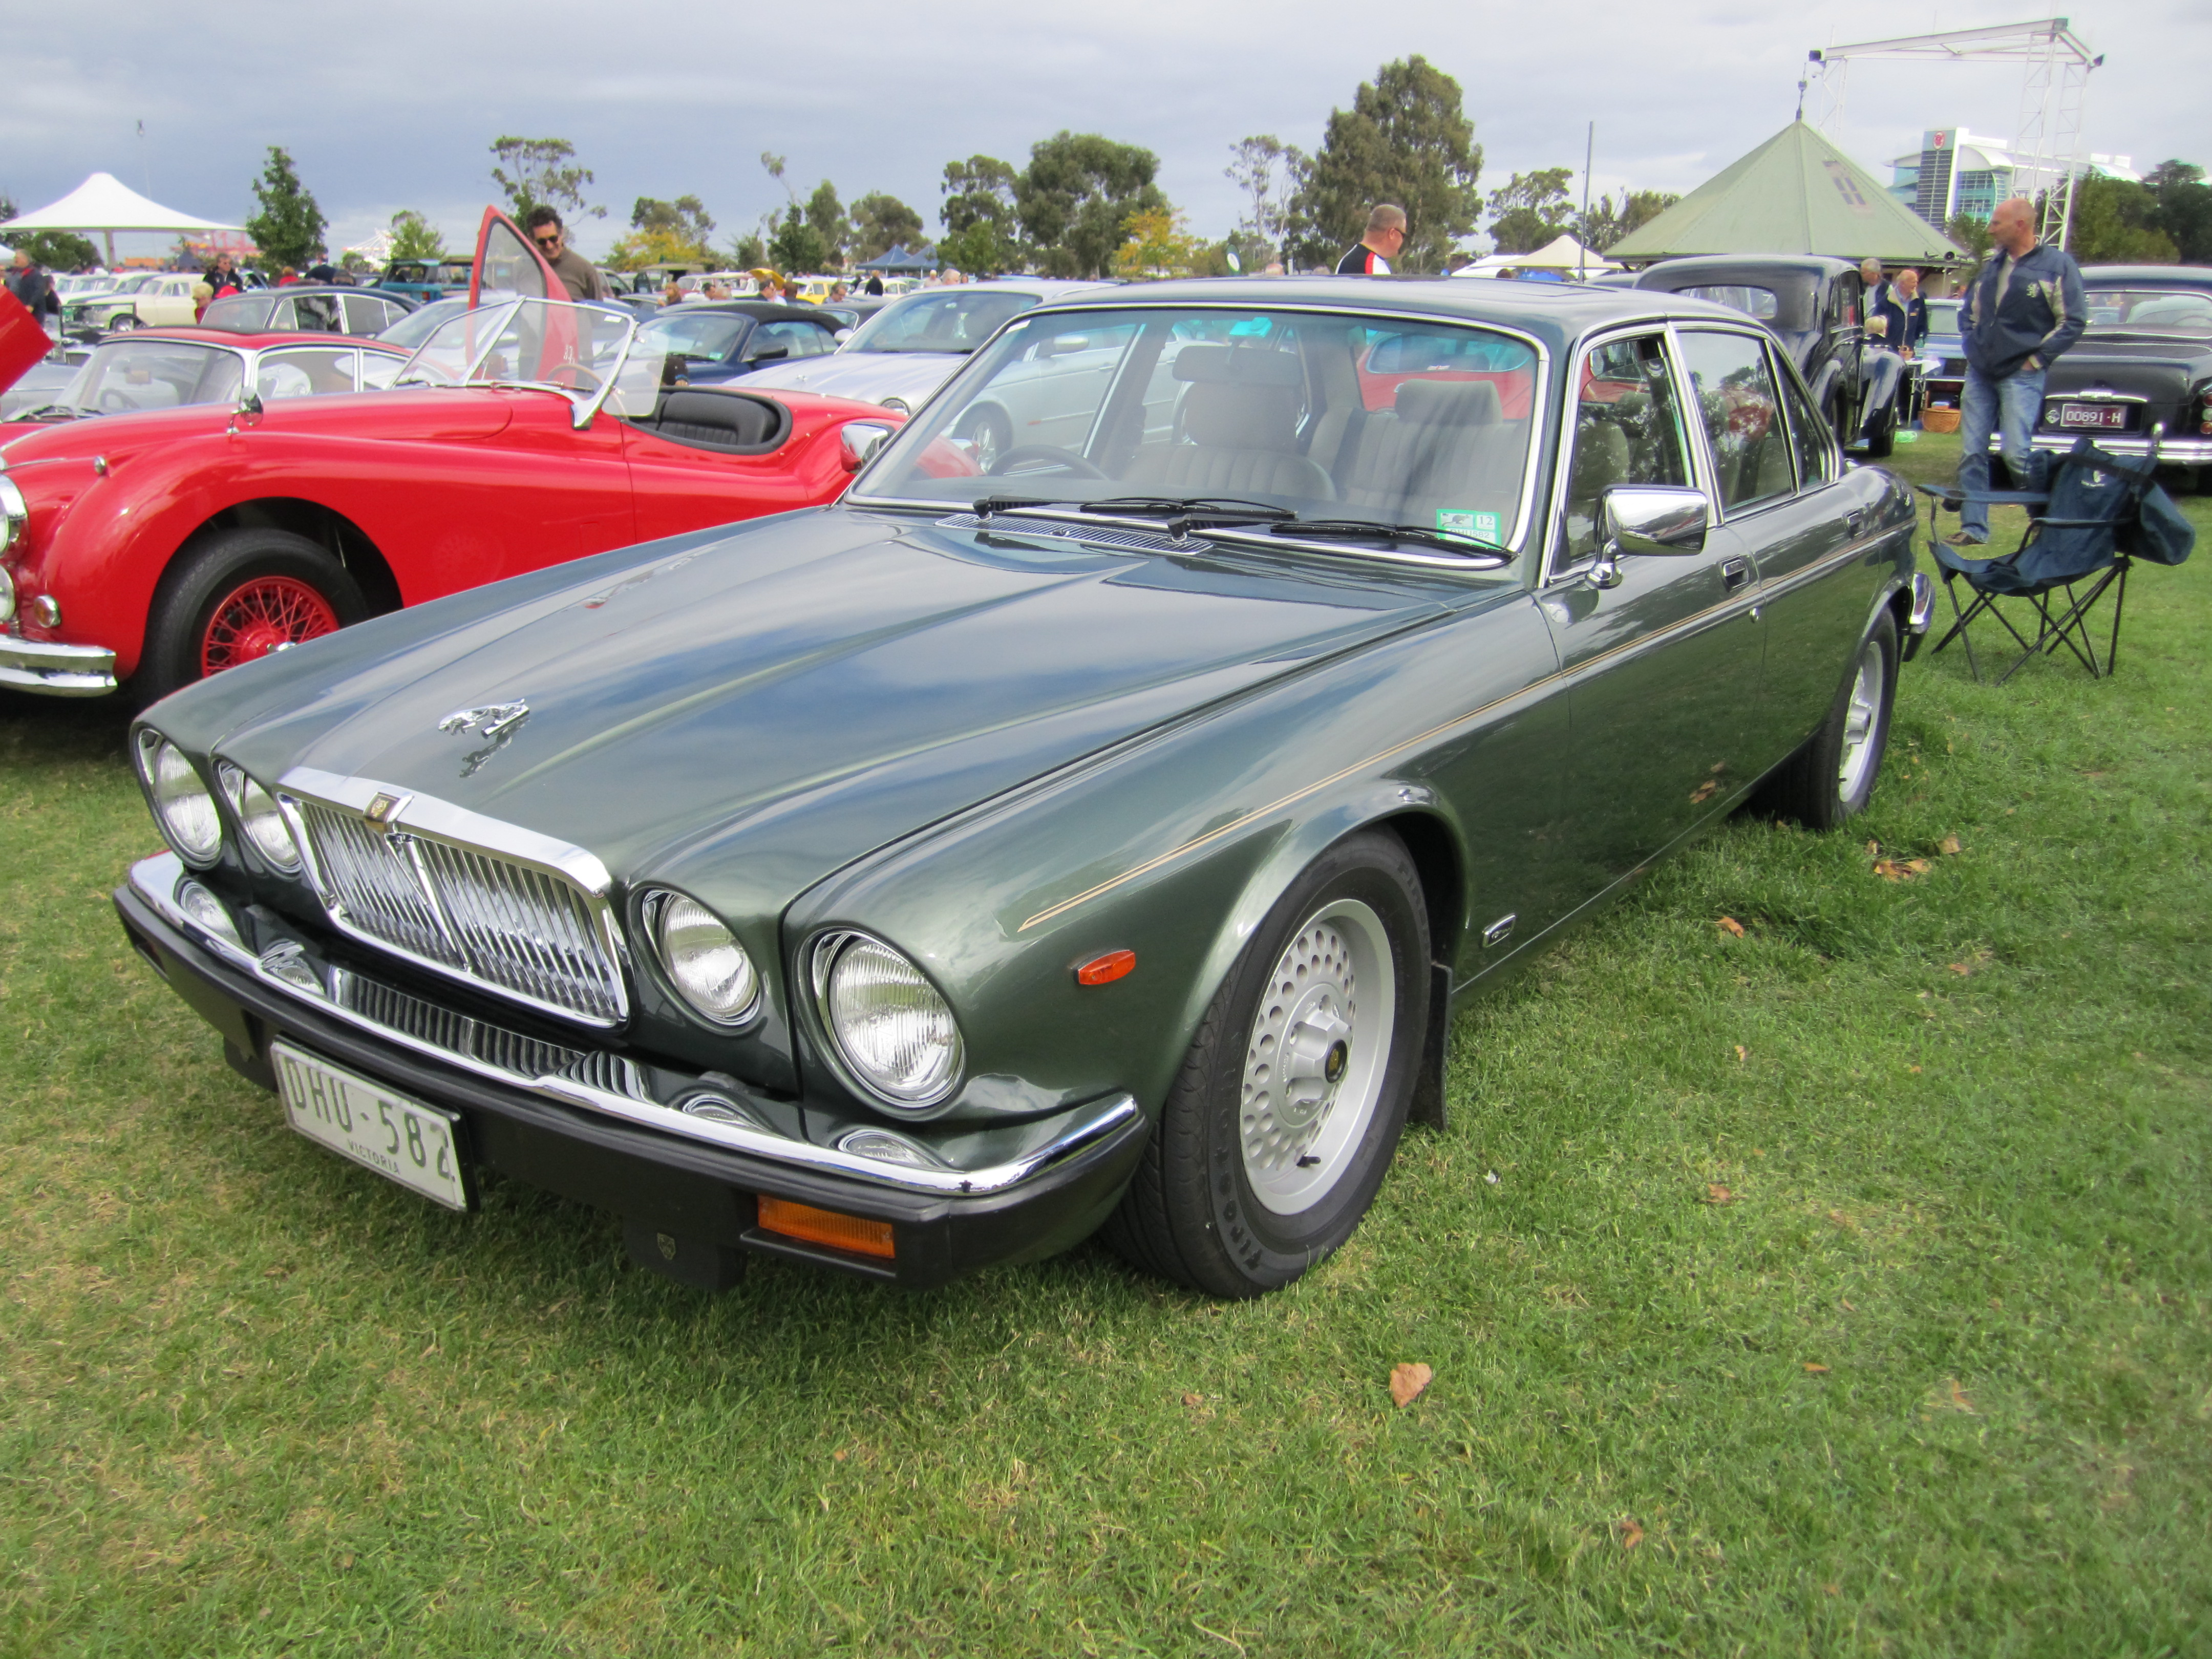 file jaguar xj6 or 12 series iii wikimedia commons. Black Bedroom Furniture Sets. Home Design Ideas